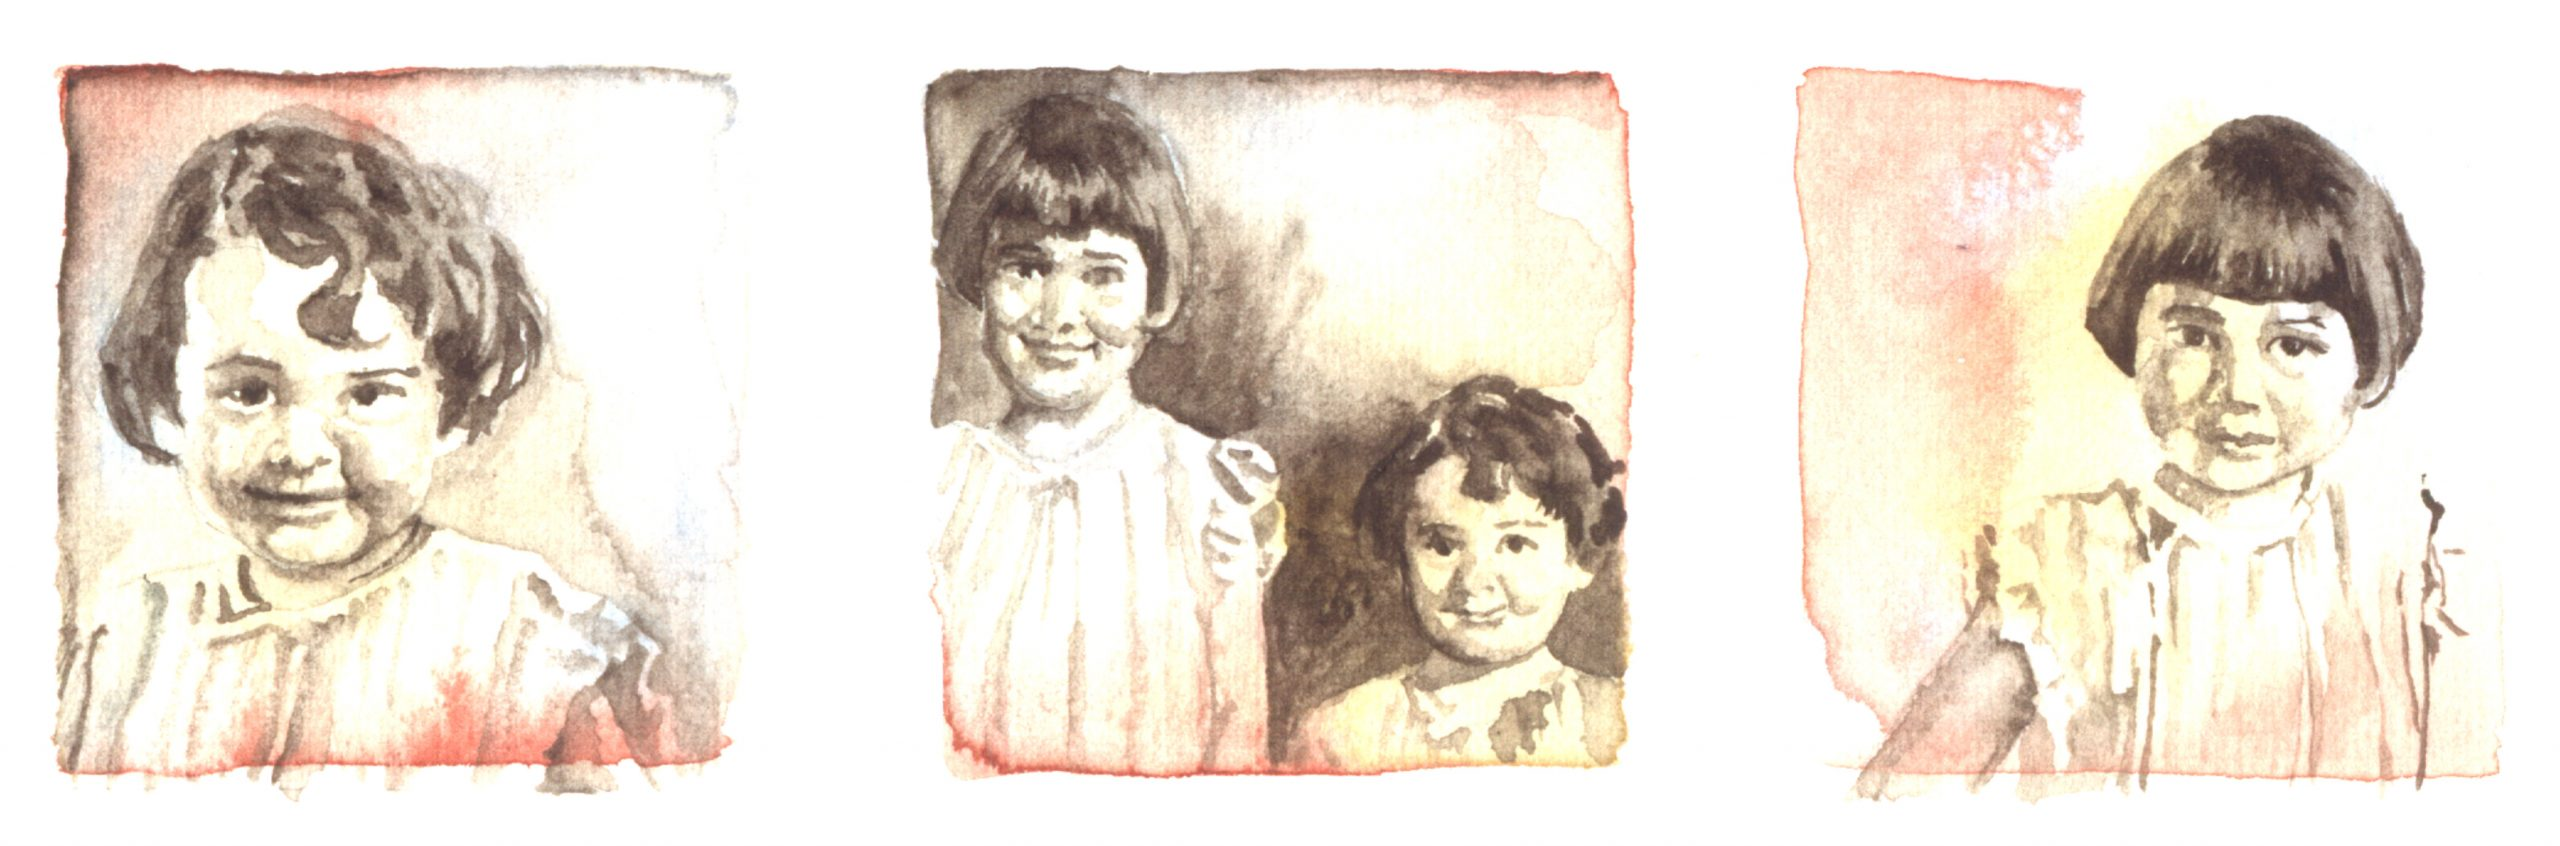 Three images of 2 little girls